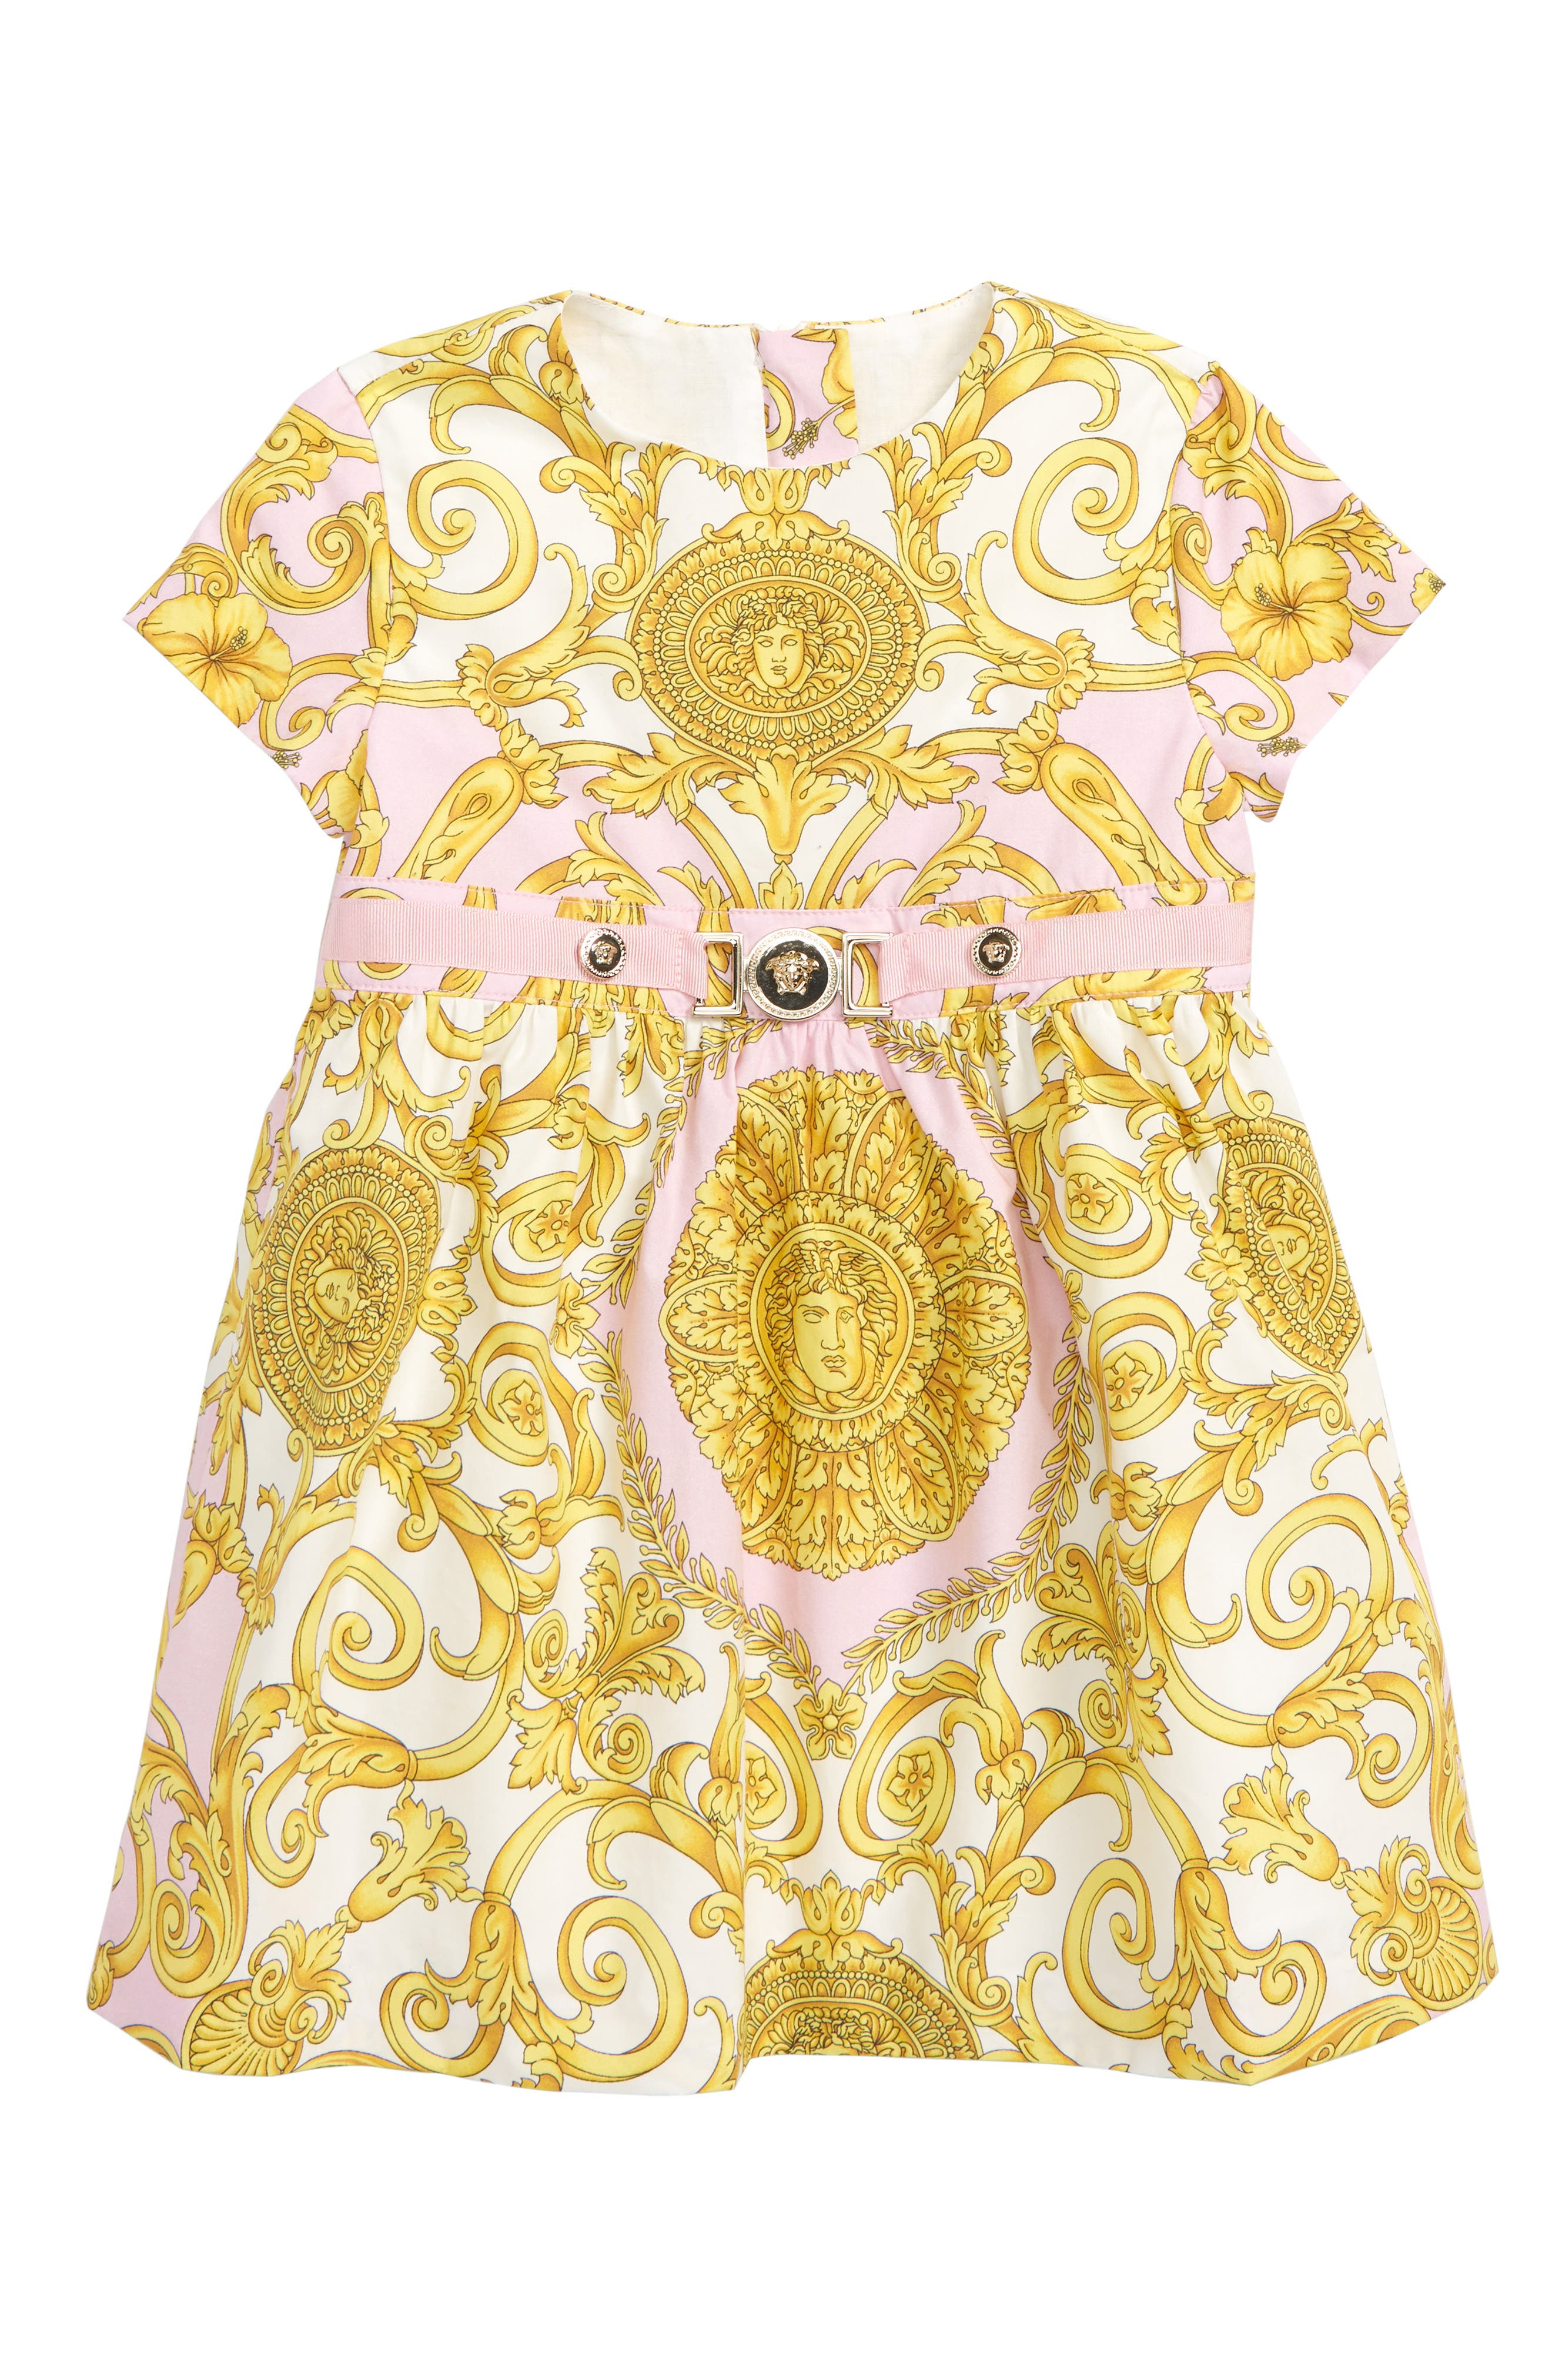 VERSACE, Barocco Print Fit & Flare Dress, Main thumbnail 1, color, PINK/ GOLD